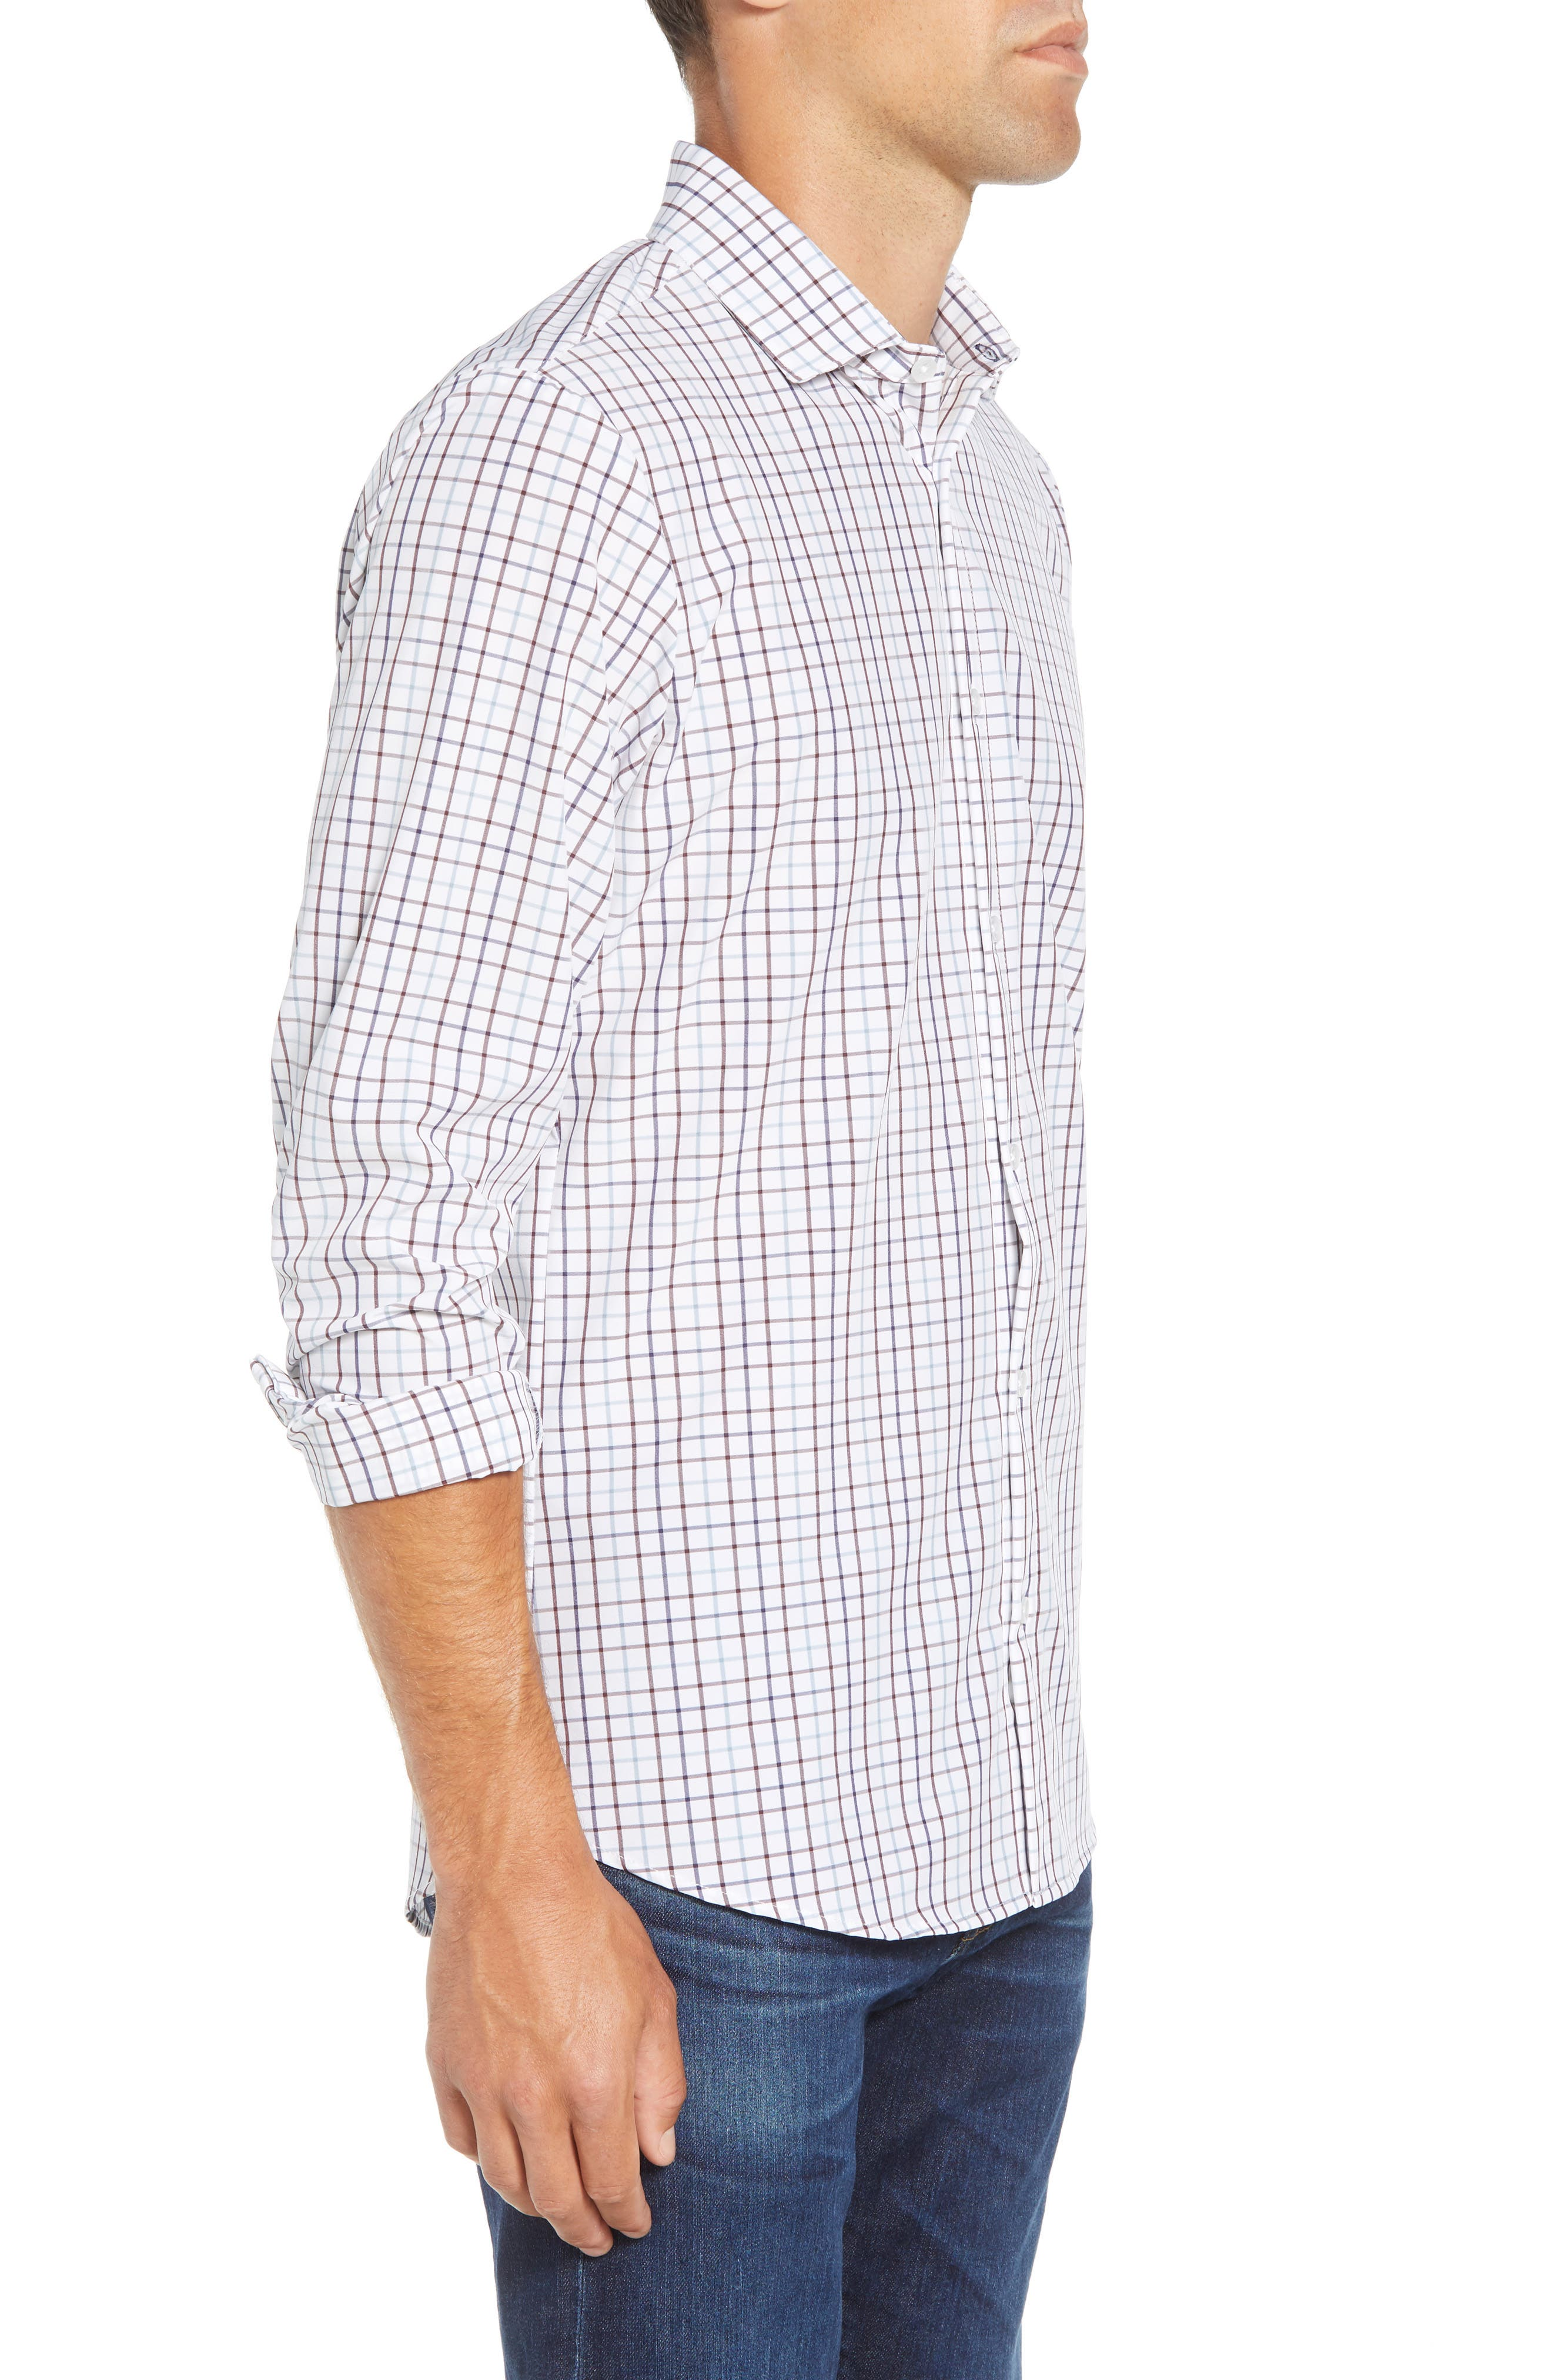 Ward Regular Fit Multi Check Performance Sport Shirt,                             Alternate thumbnail 4, color,                             WHITE